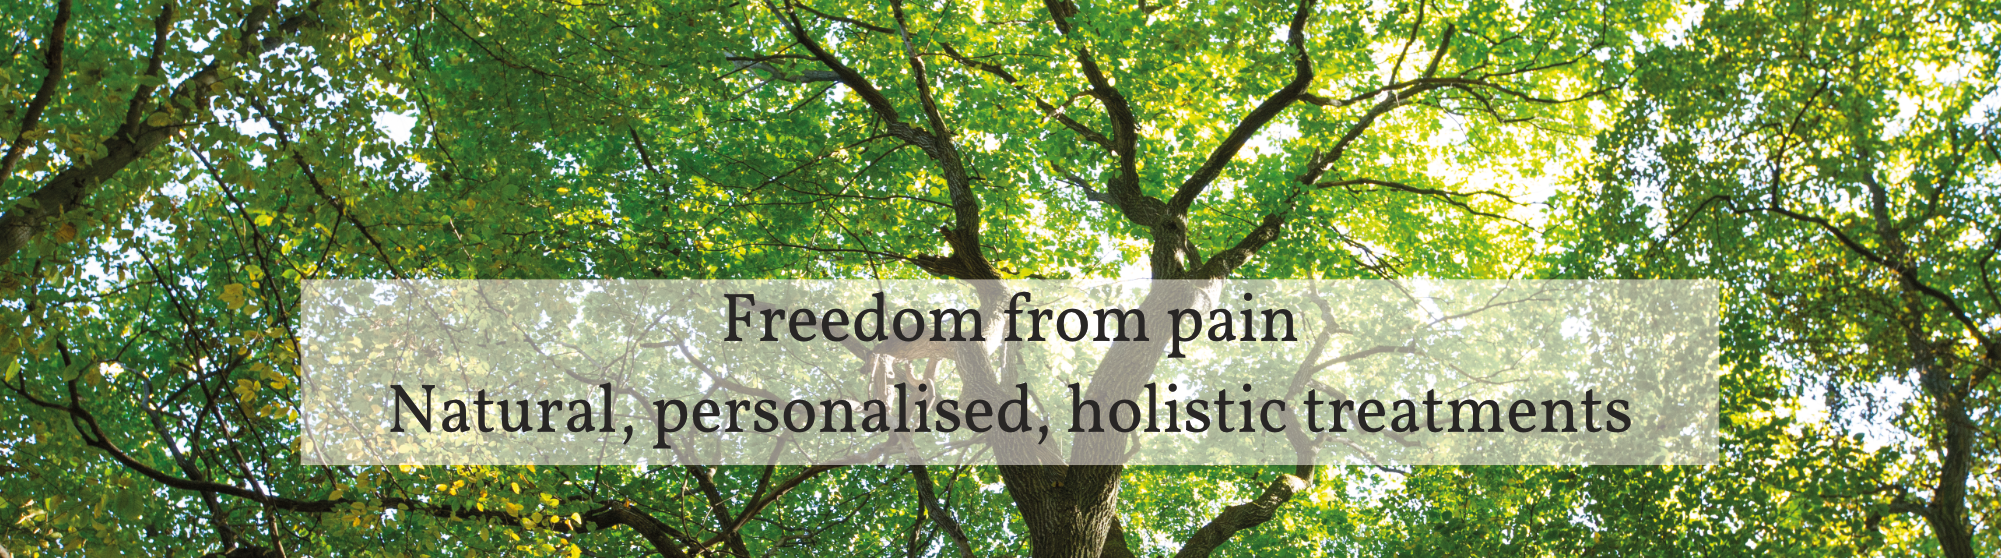 Freedom from pain. Natural, personalised, holistic treatments.